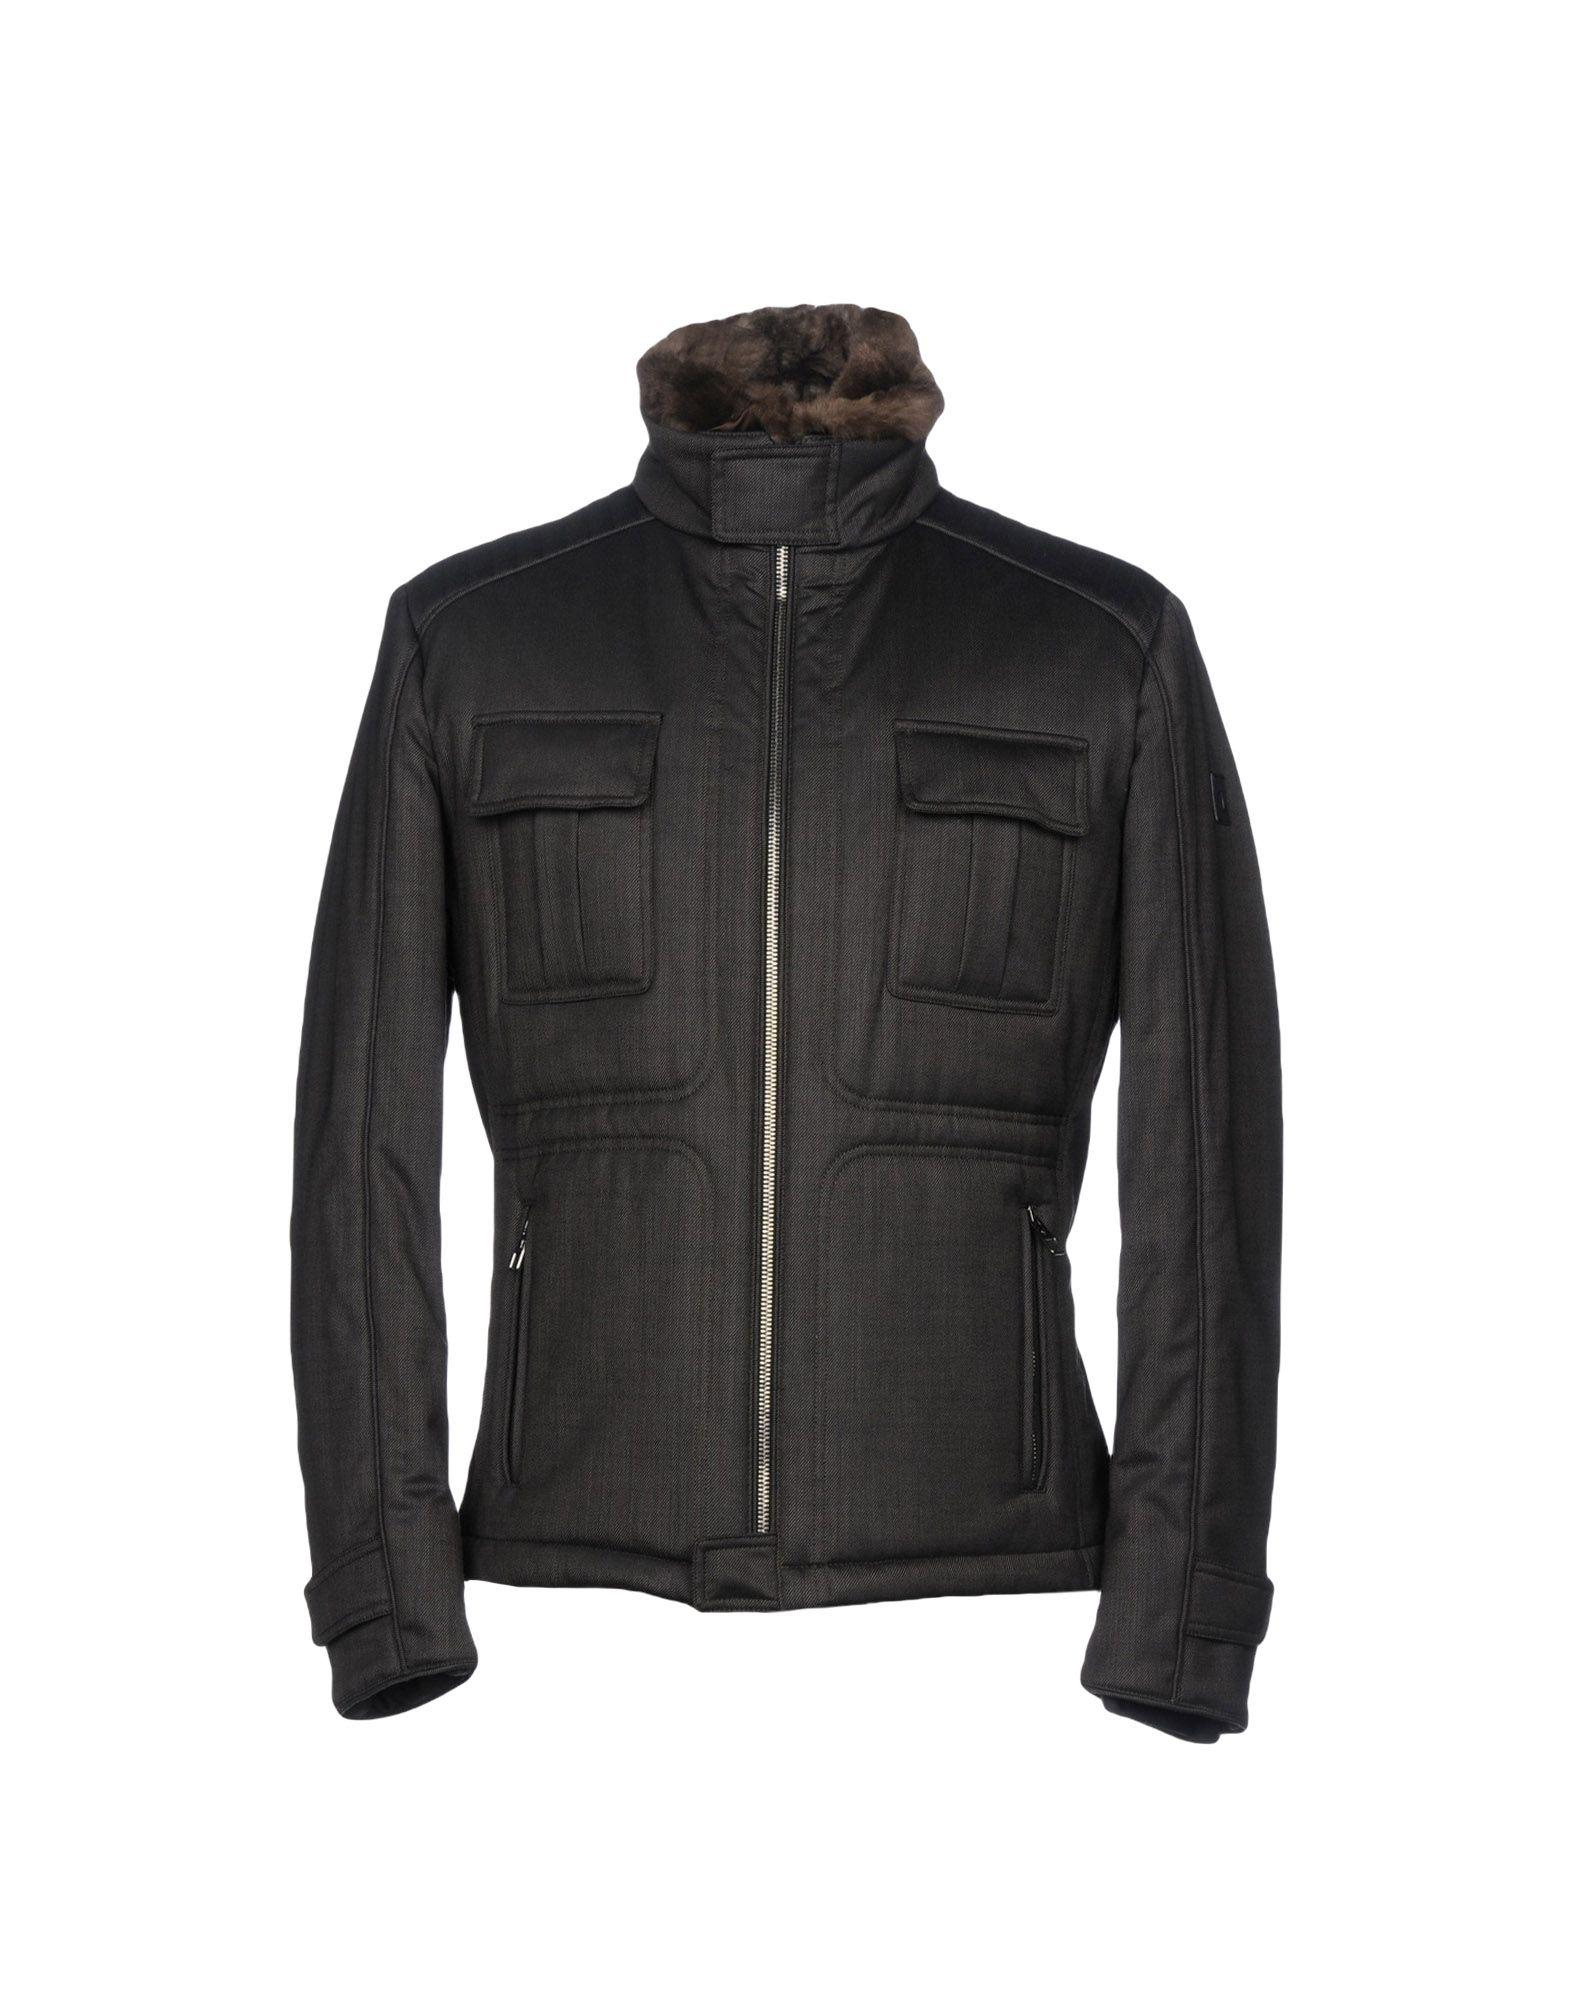 Montecore Jacket In Black